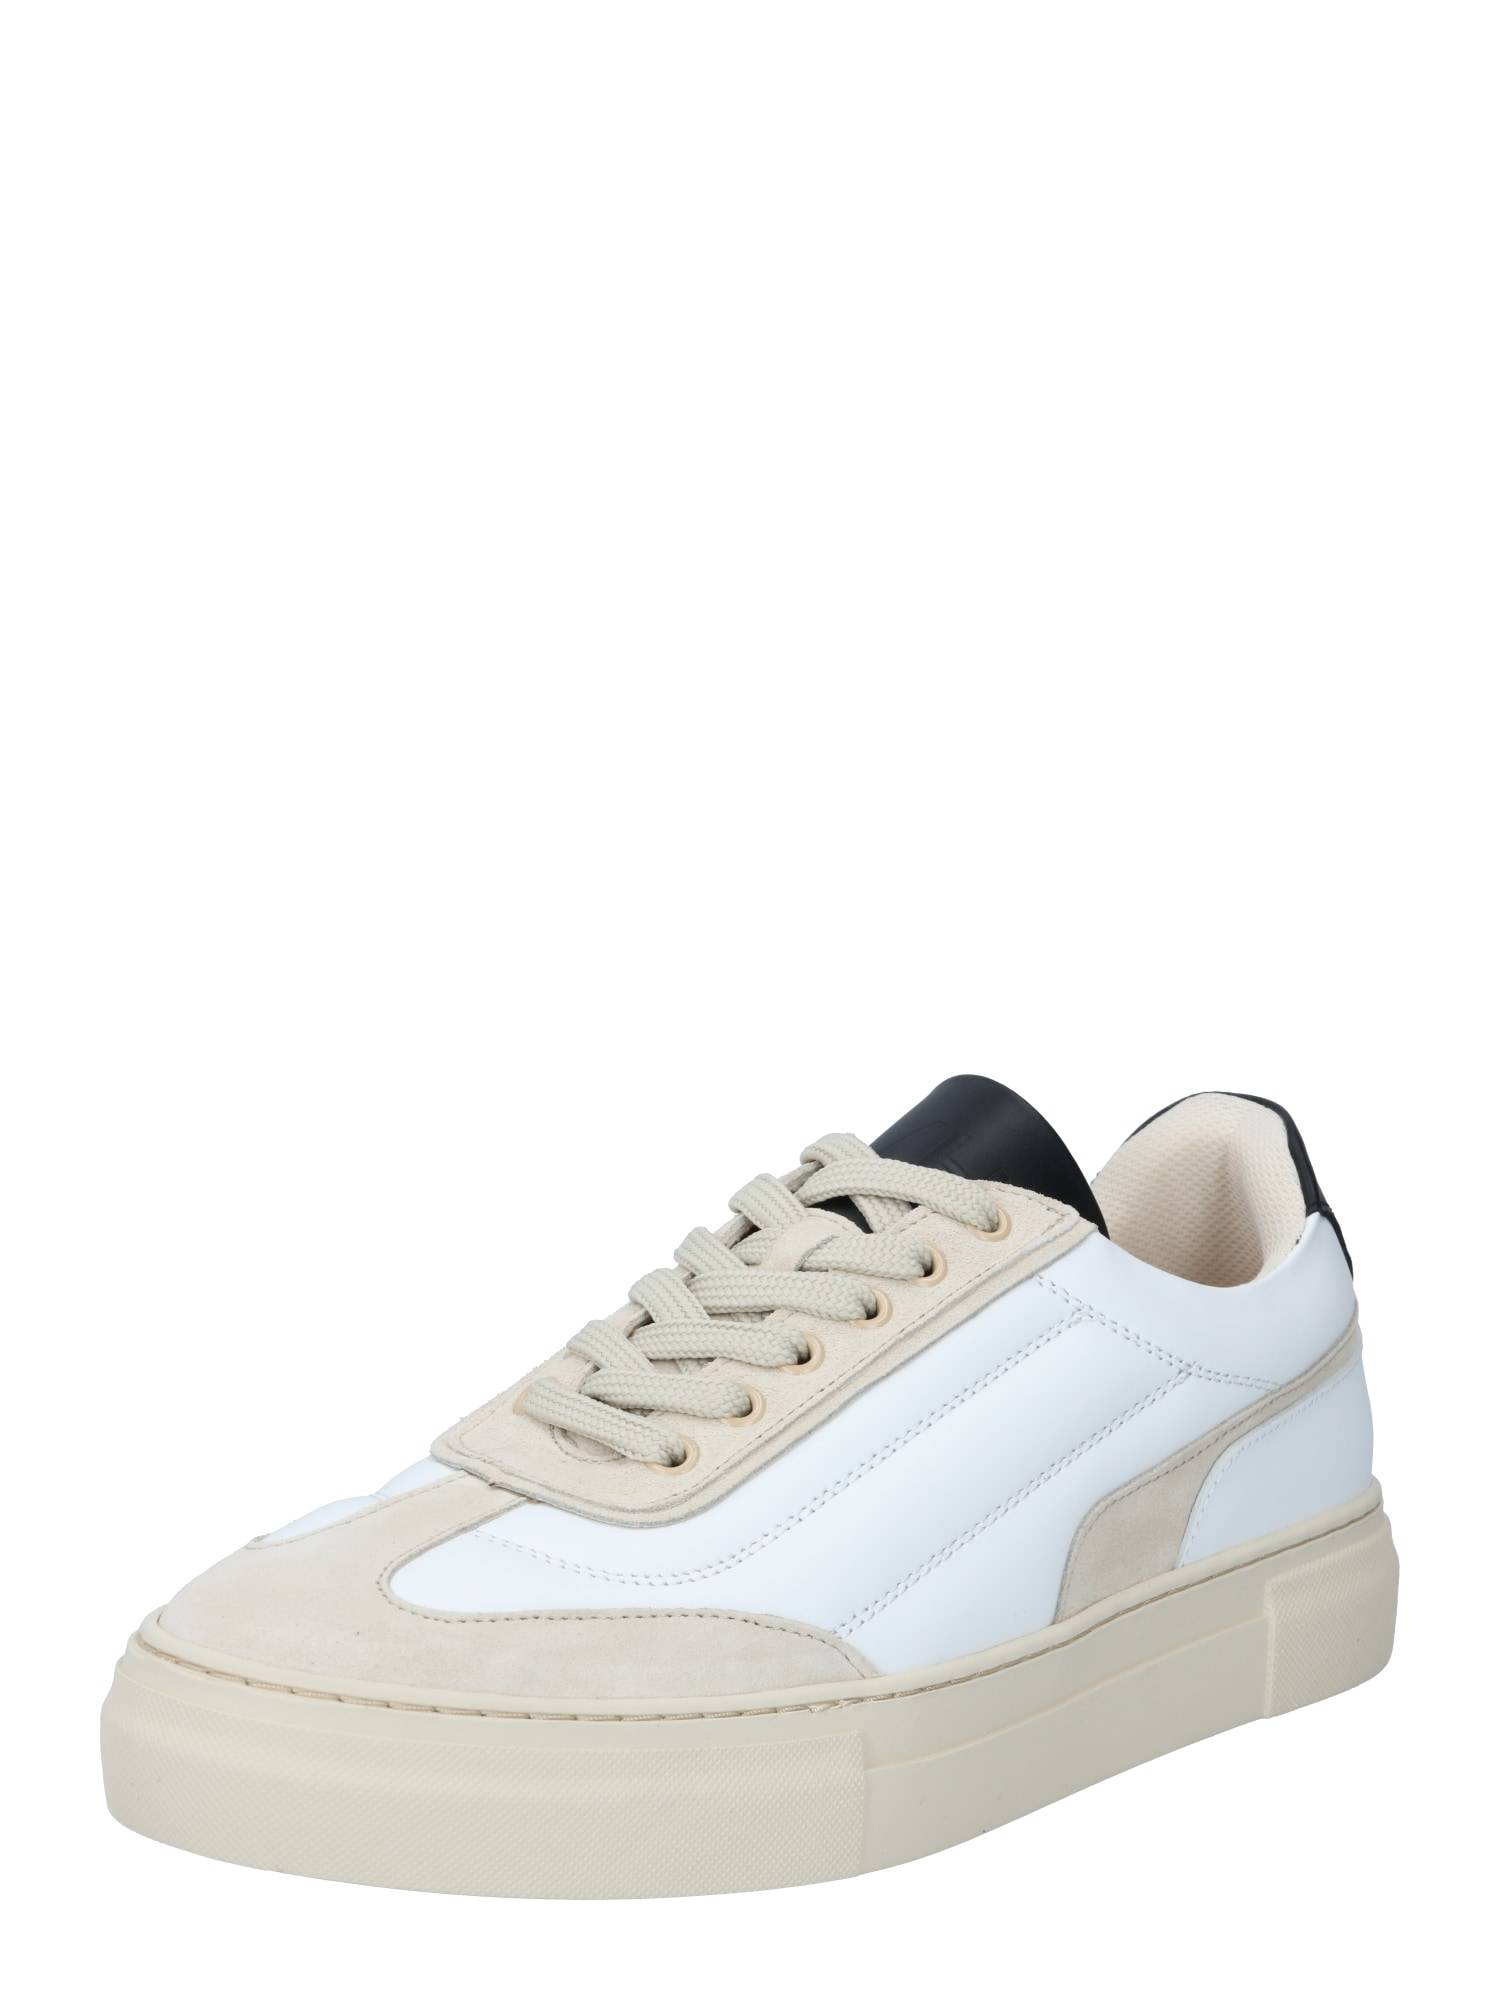 SELECTED HOMME Baskets basses 'SLHDAVID CHUNKY QUILT LEATHER TRAINER B'  - Blanc, Beige - Taille: 41 - male